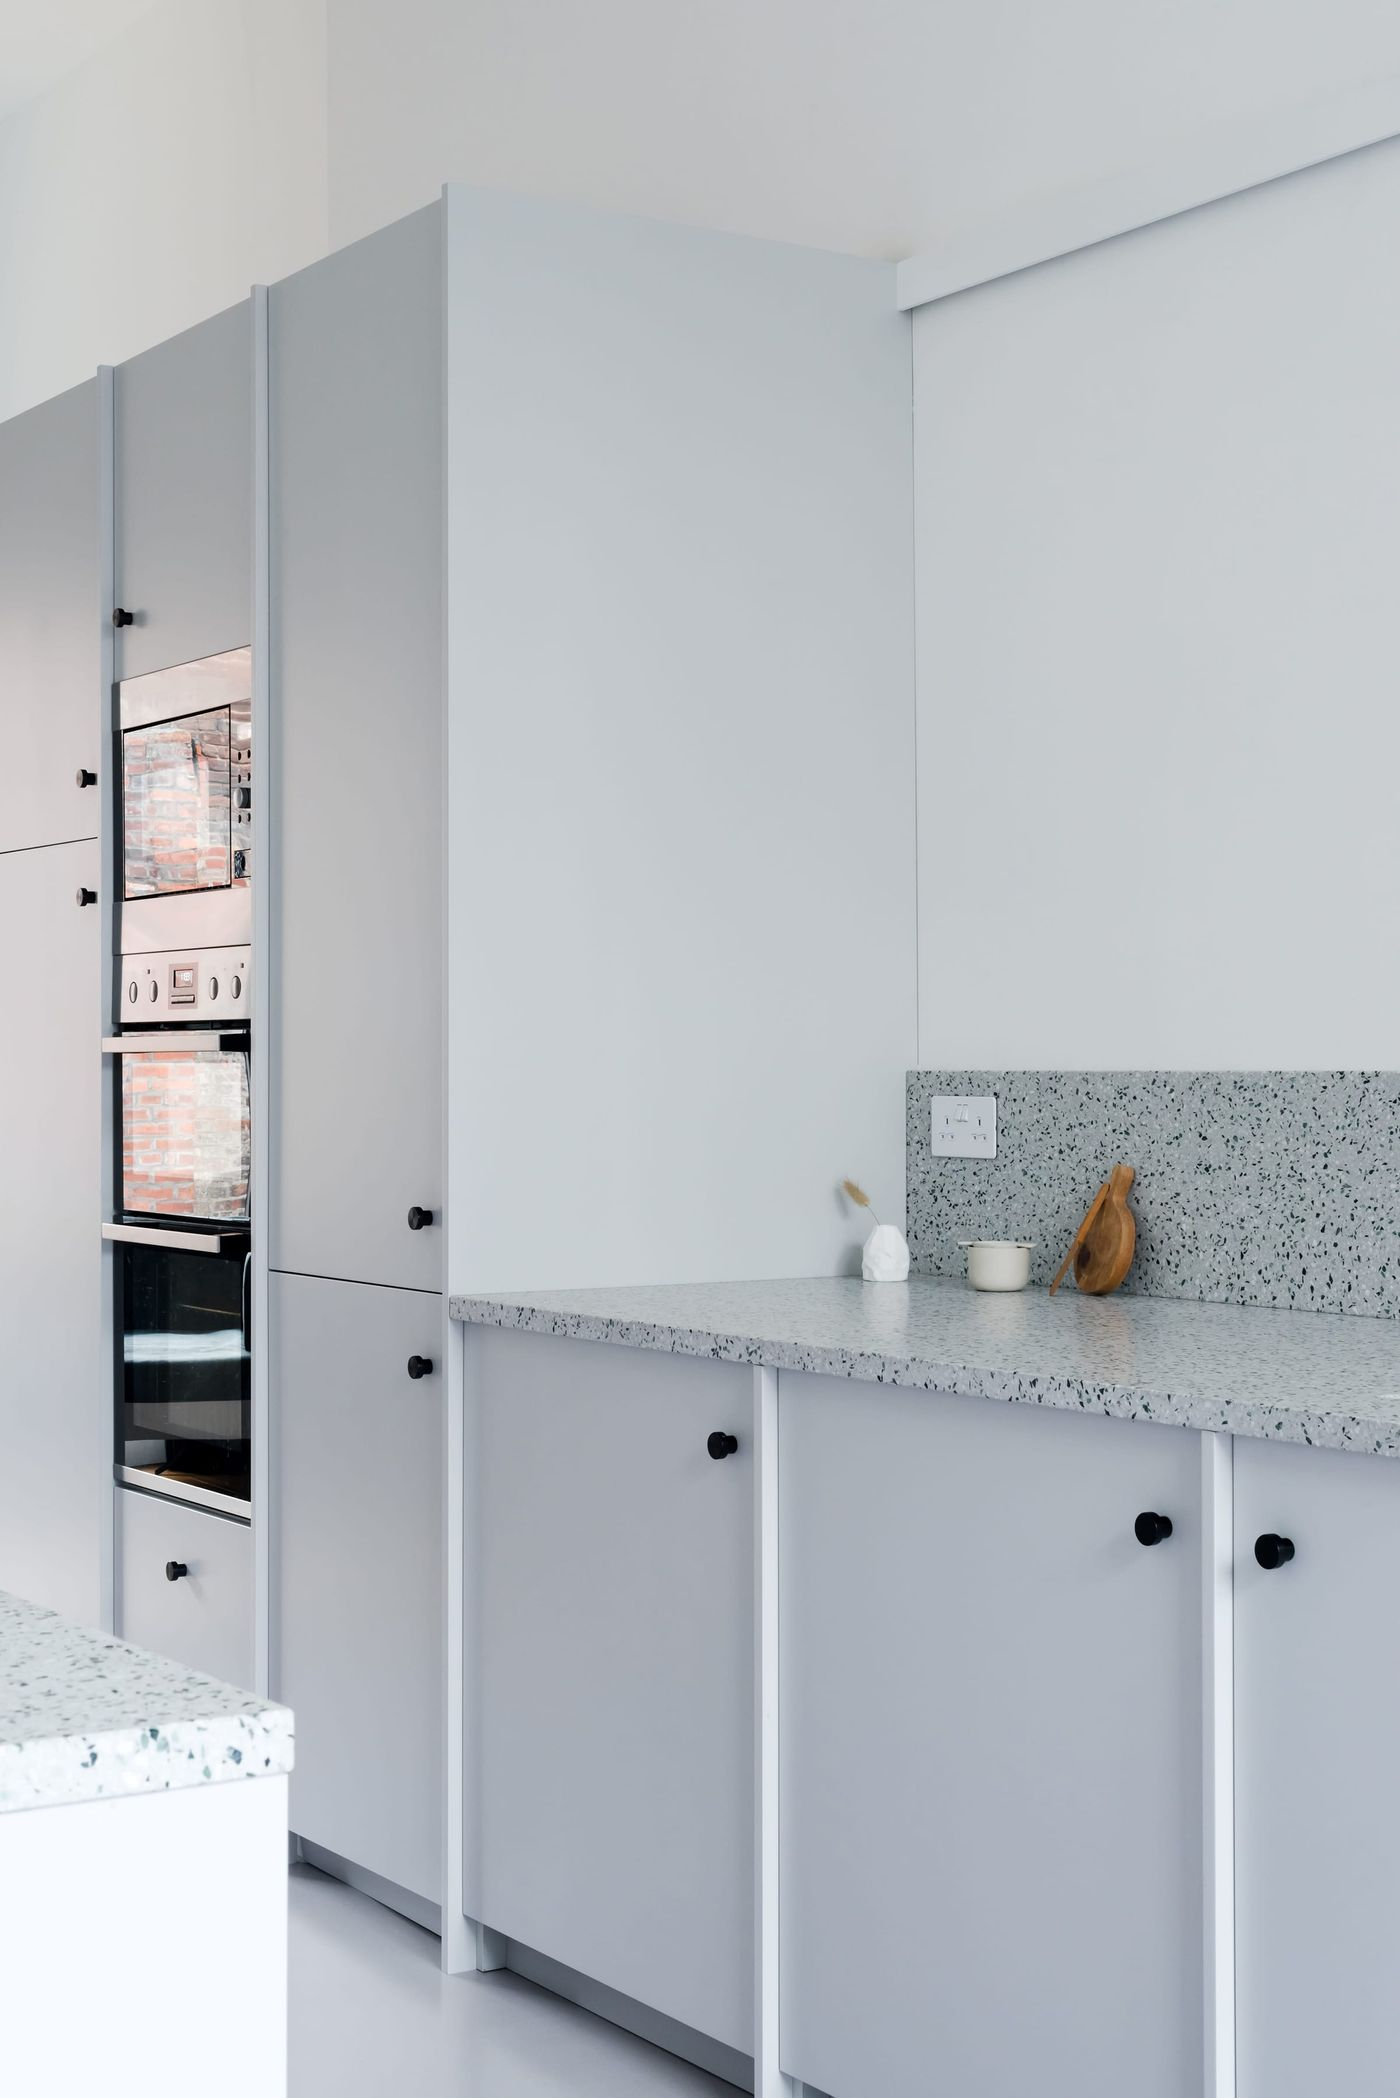 Bespoke kitchen designed by From Works of light grey cabinets and terrazzo worktop in Kelham Island, Sheffield.